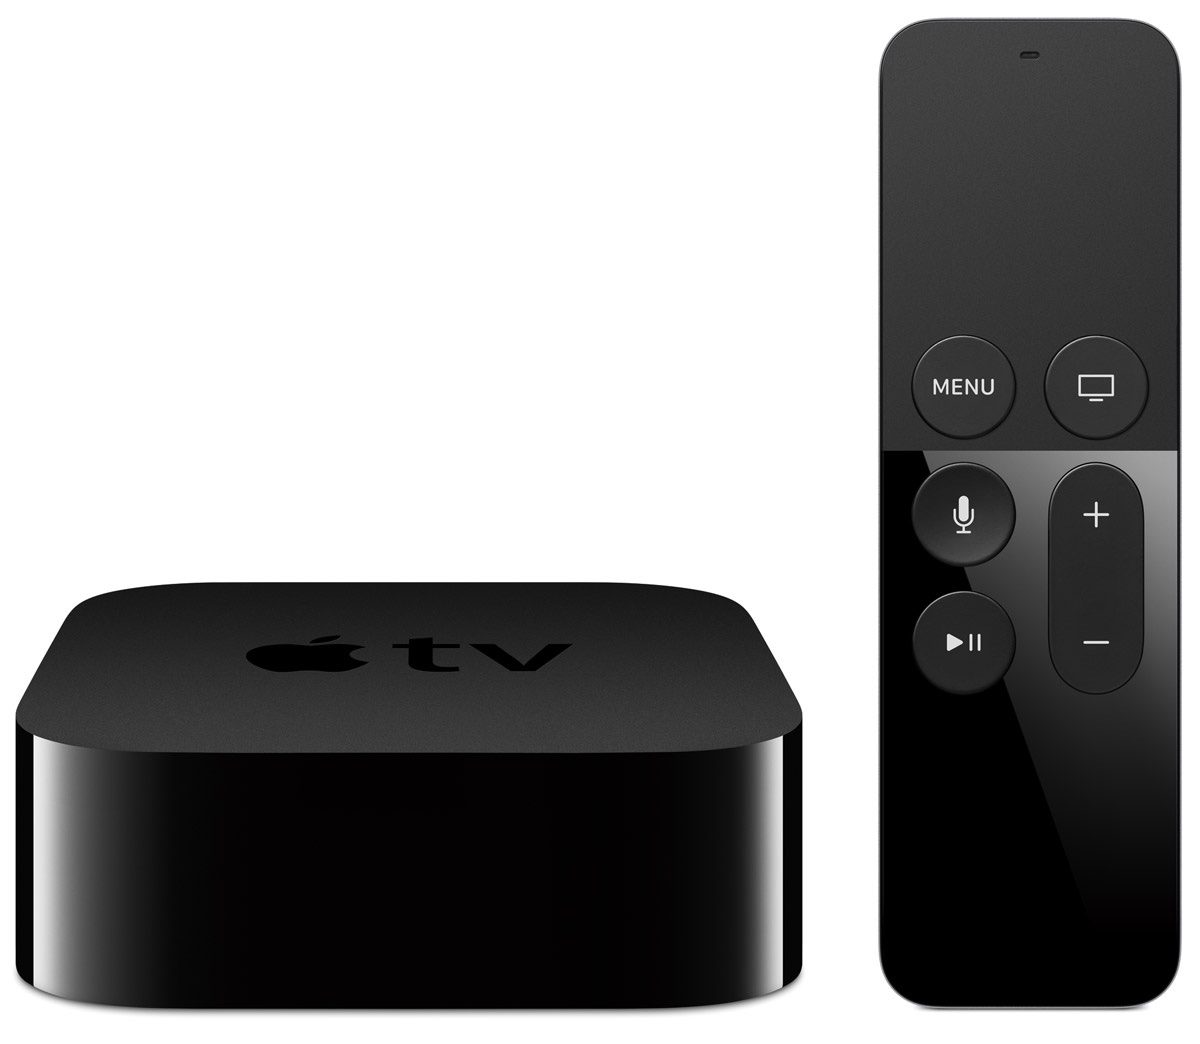 Apple TV 4K brings HDR and Dolbyvision